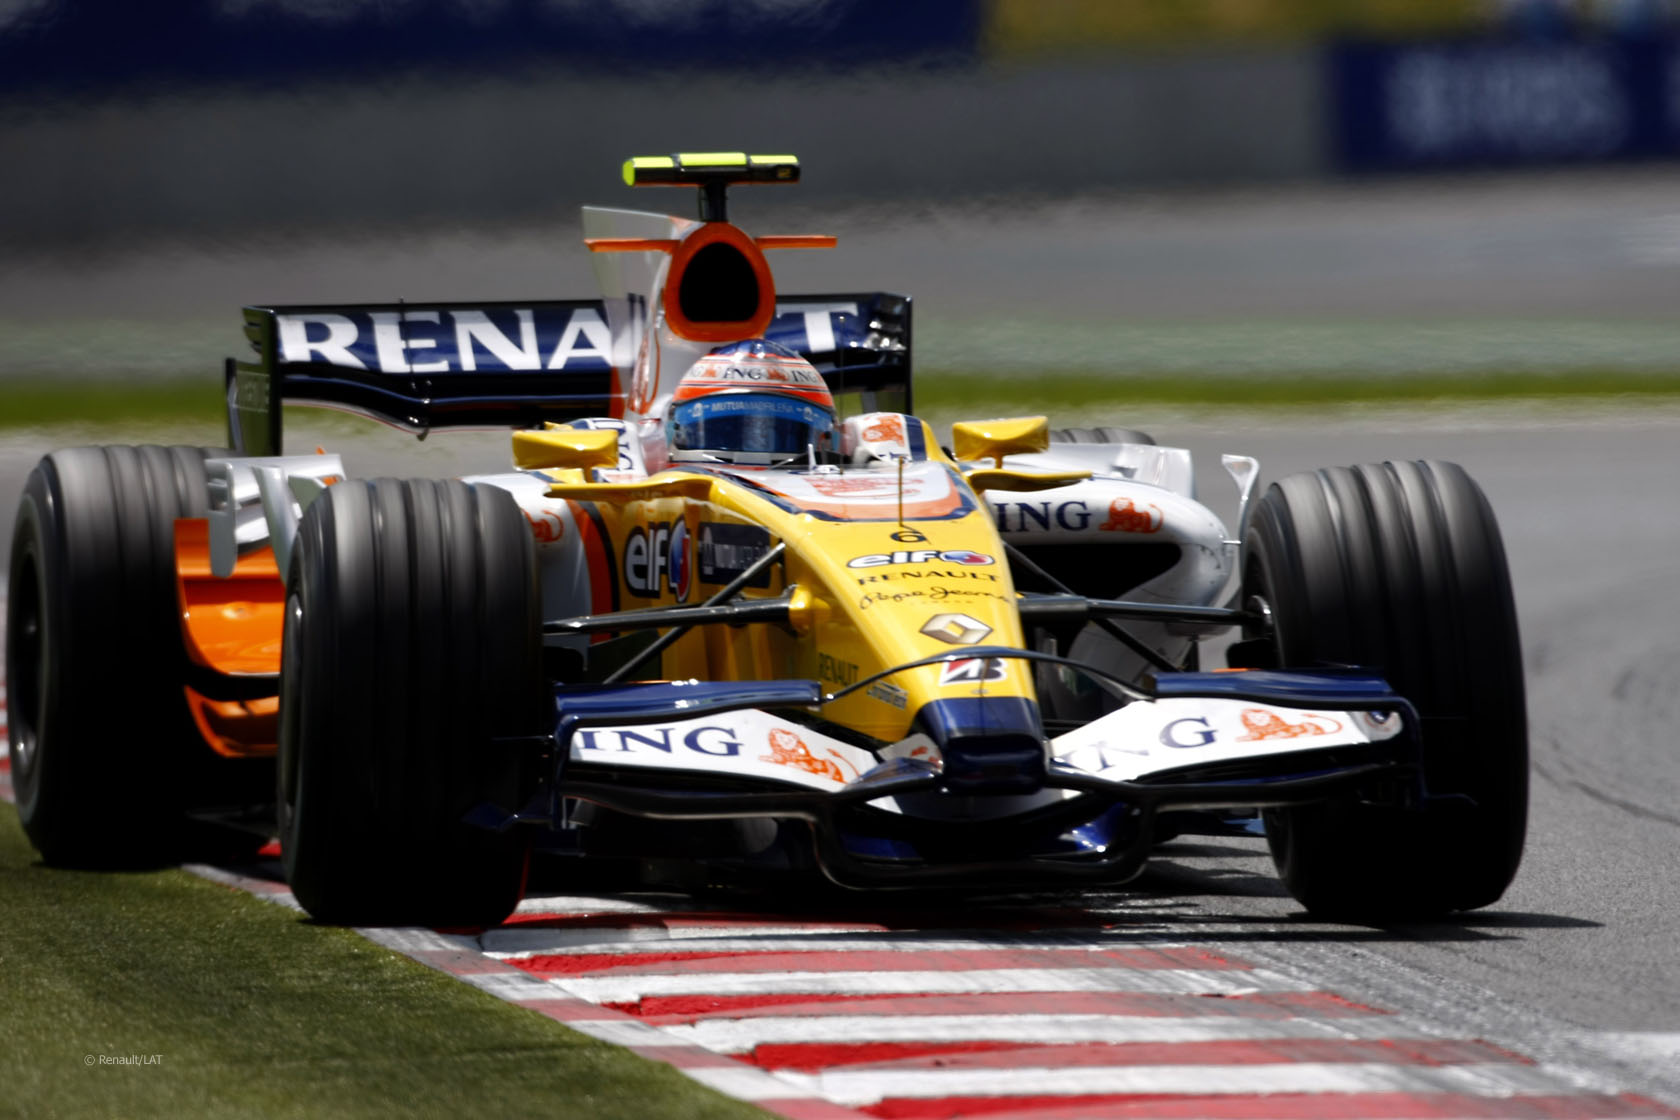 Nelson Piquet Jnr, Renault R28, Magny-Cours, 2008